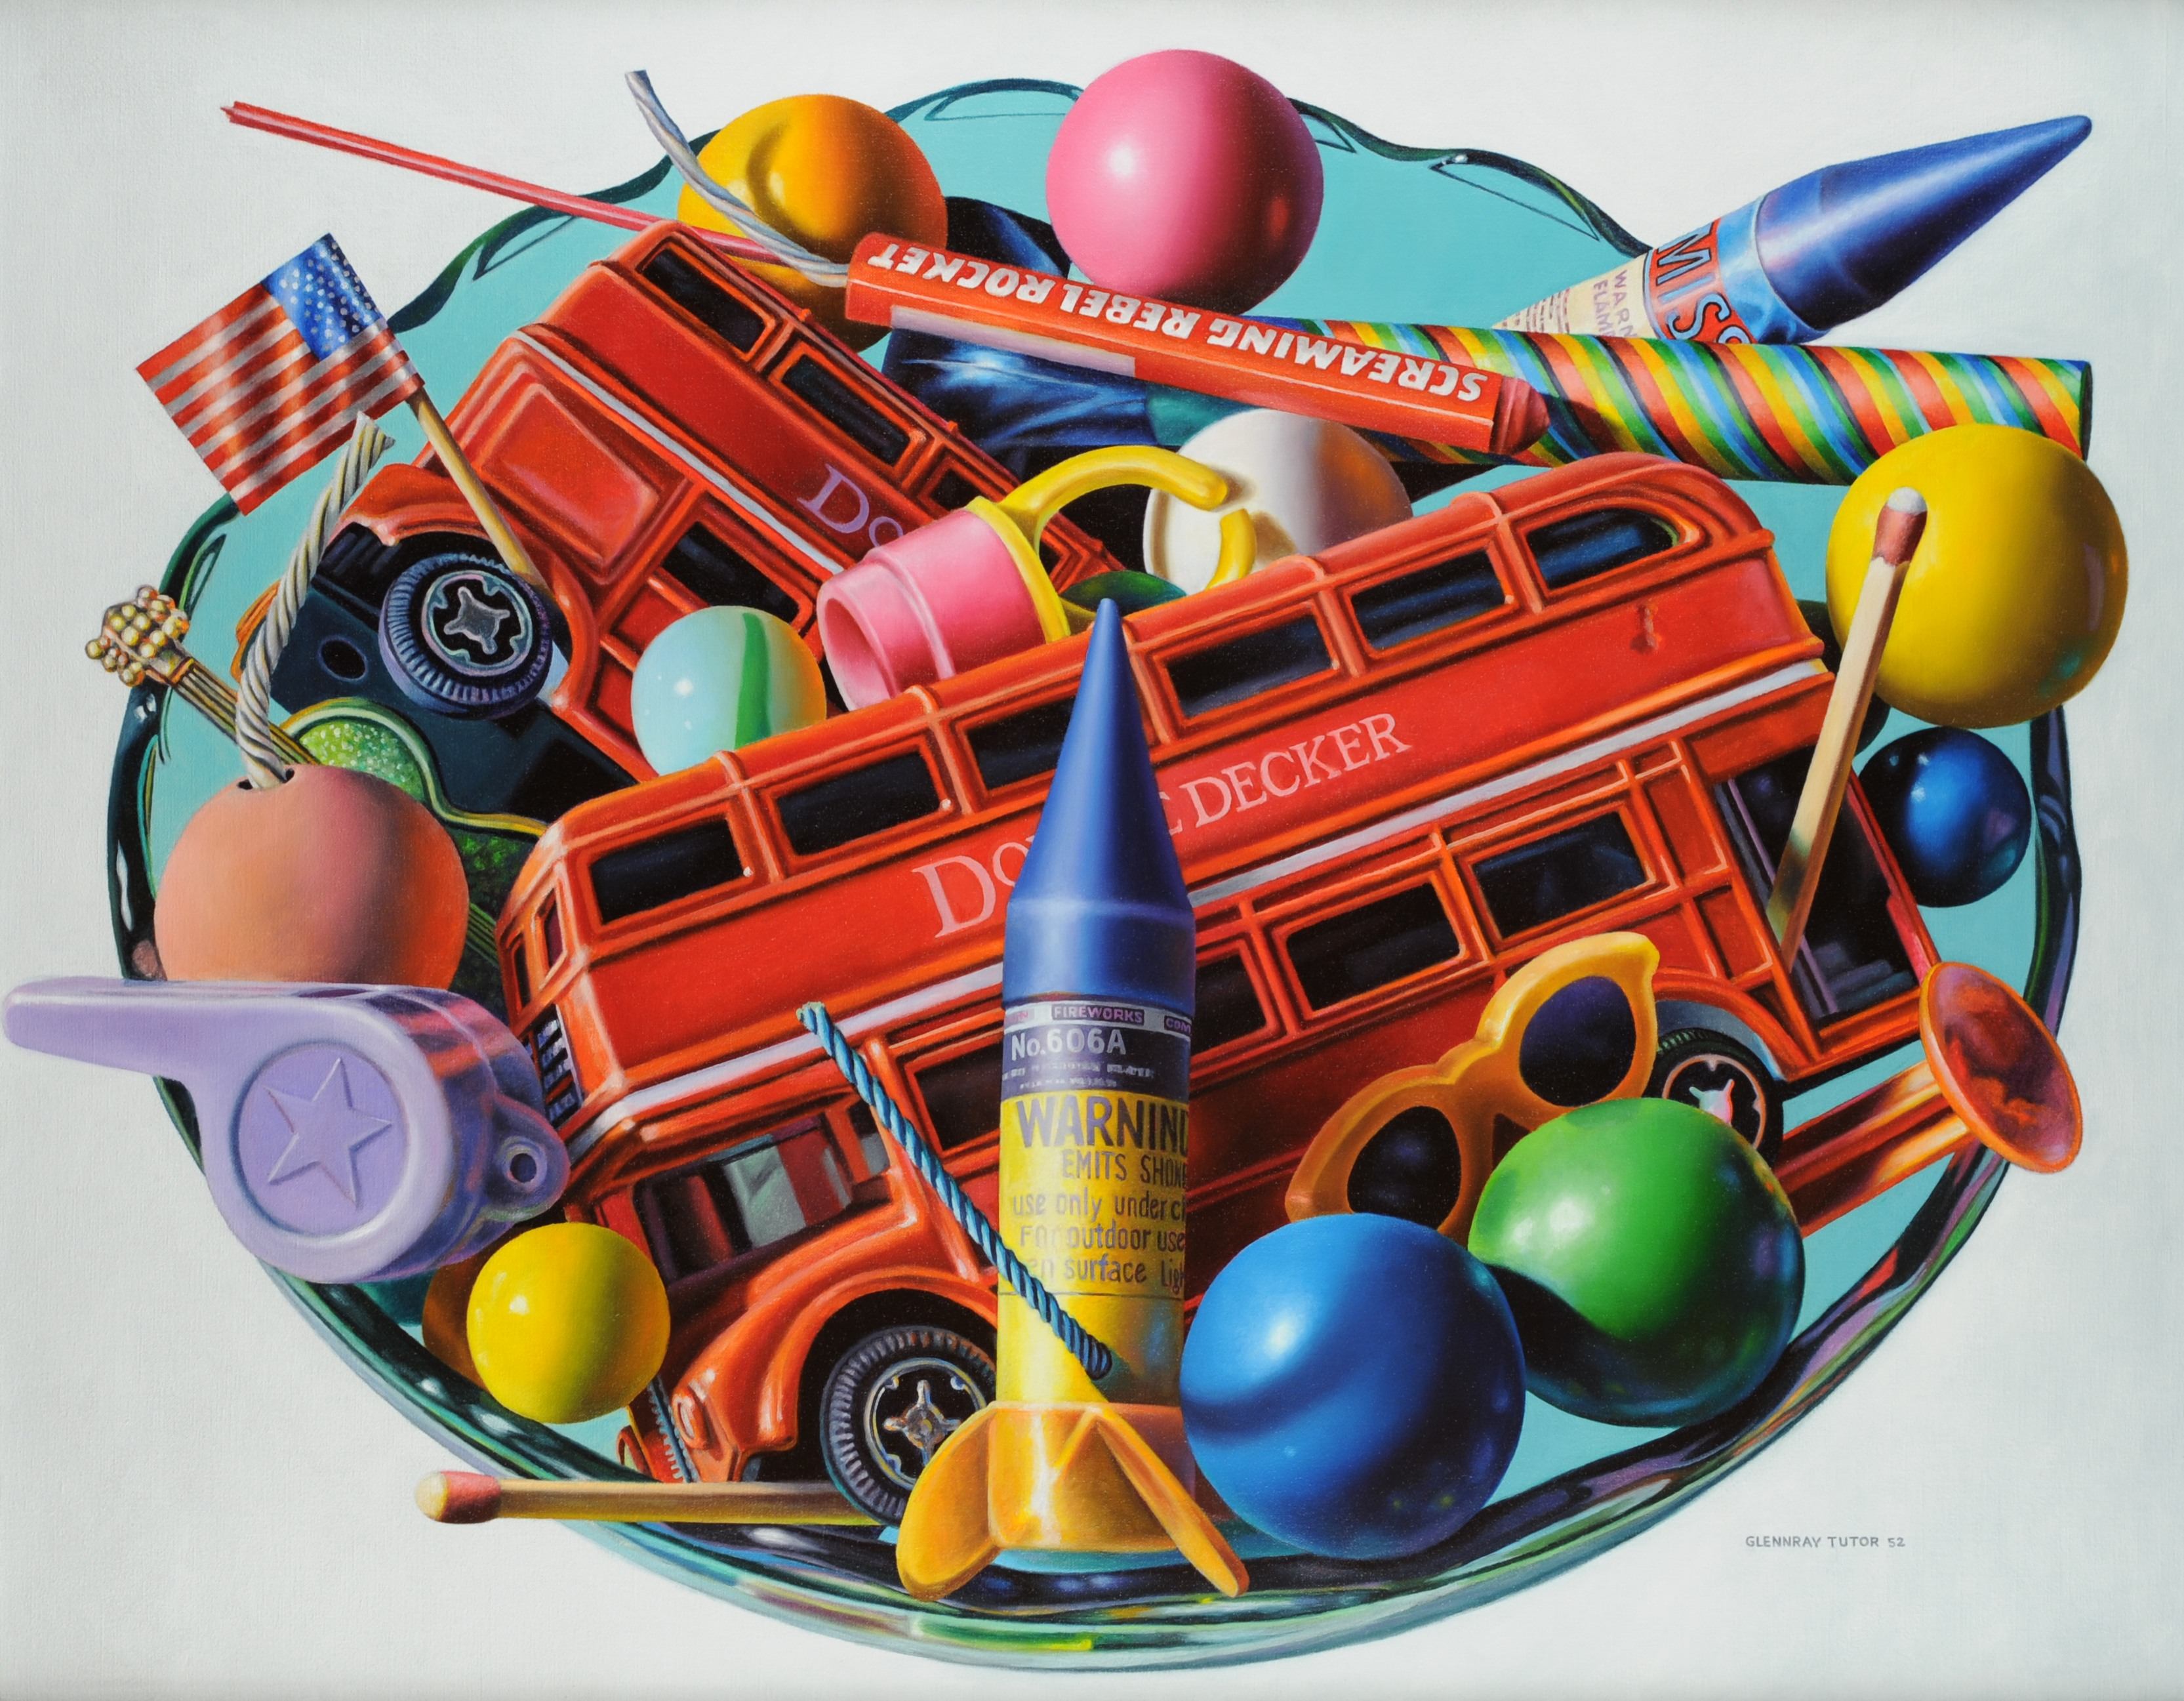 DOUBLE DECKER, Oil on Linen Canvas, 29 x 36 inches, 2003, Collection: Jay and Stacey Underwood, Oxford, MS